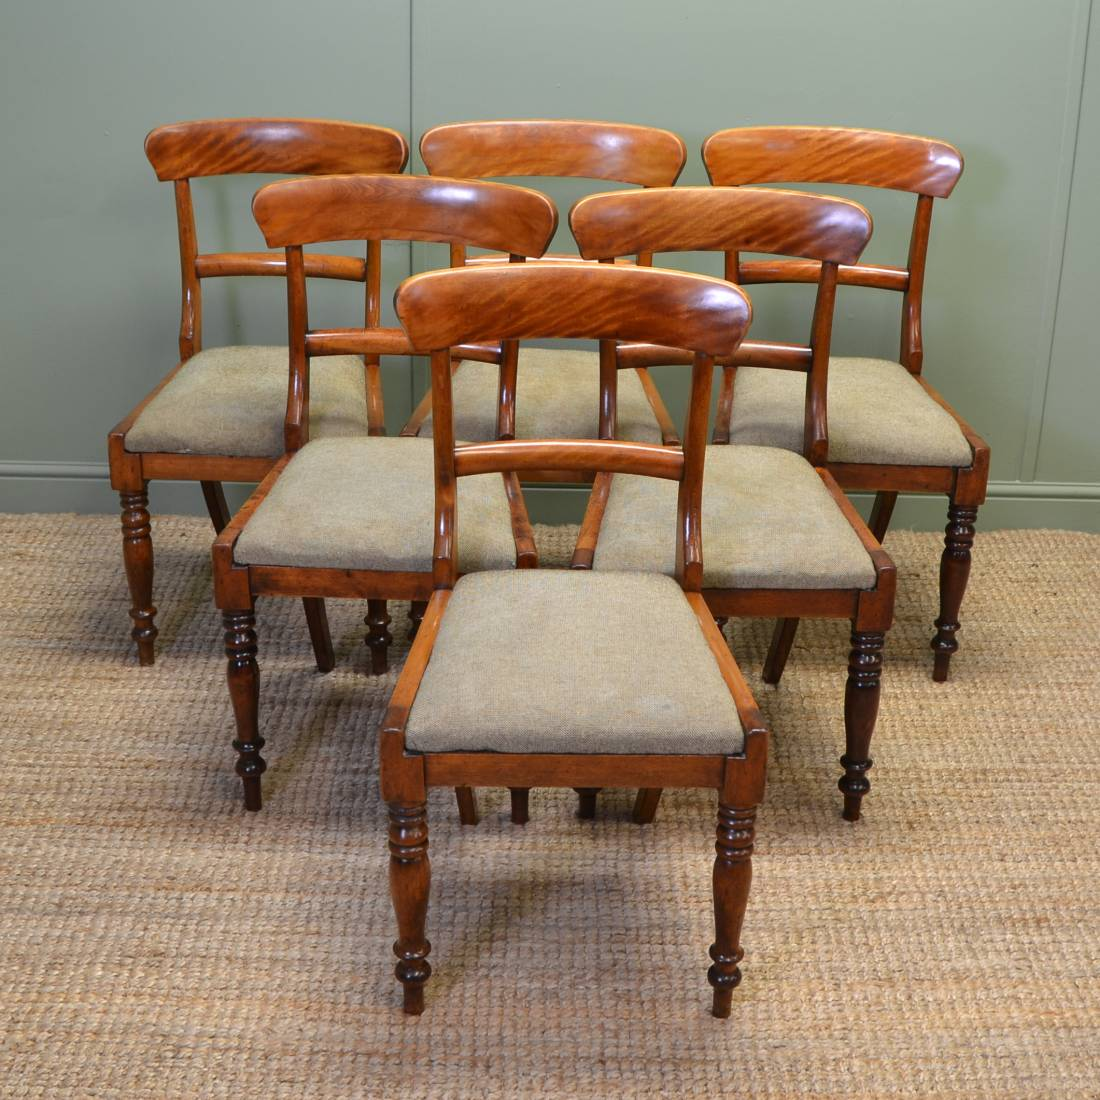 Unusual Set Of Six Country Satin Birch Victorian Dining Chairs - Unusual Set Of Six Country Satin Birch Victorian Dining Chairs